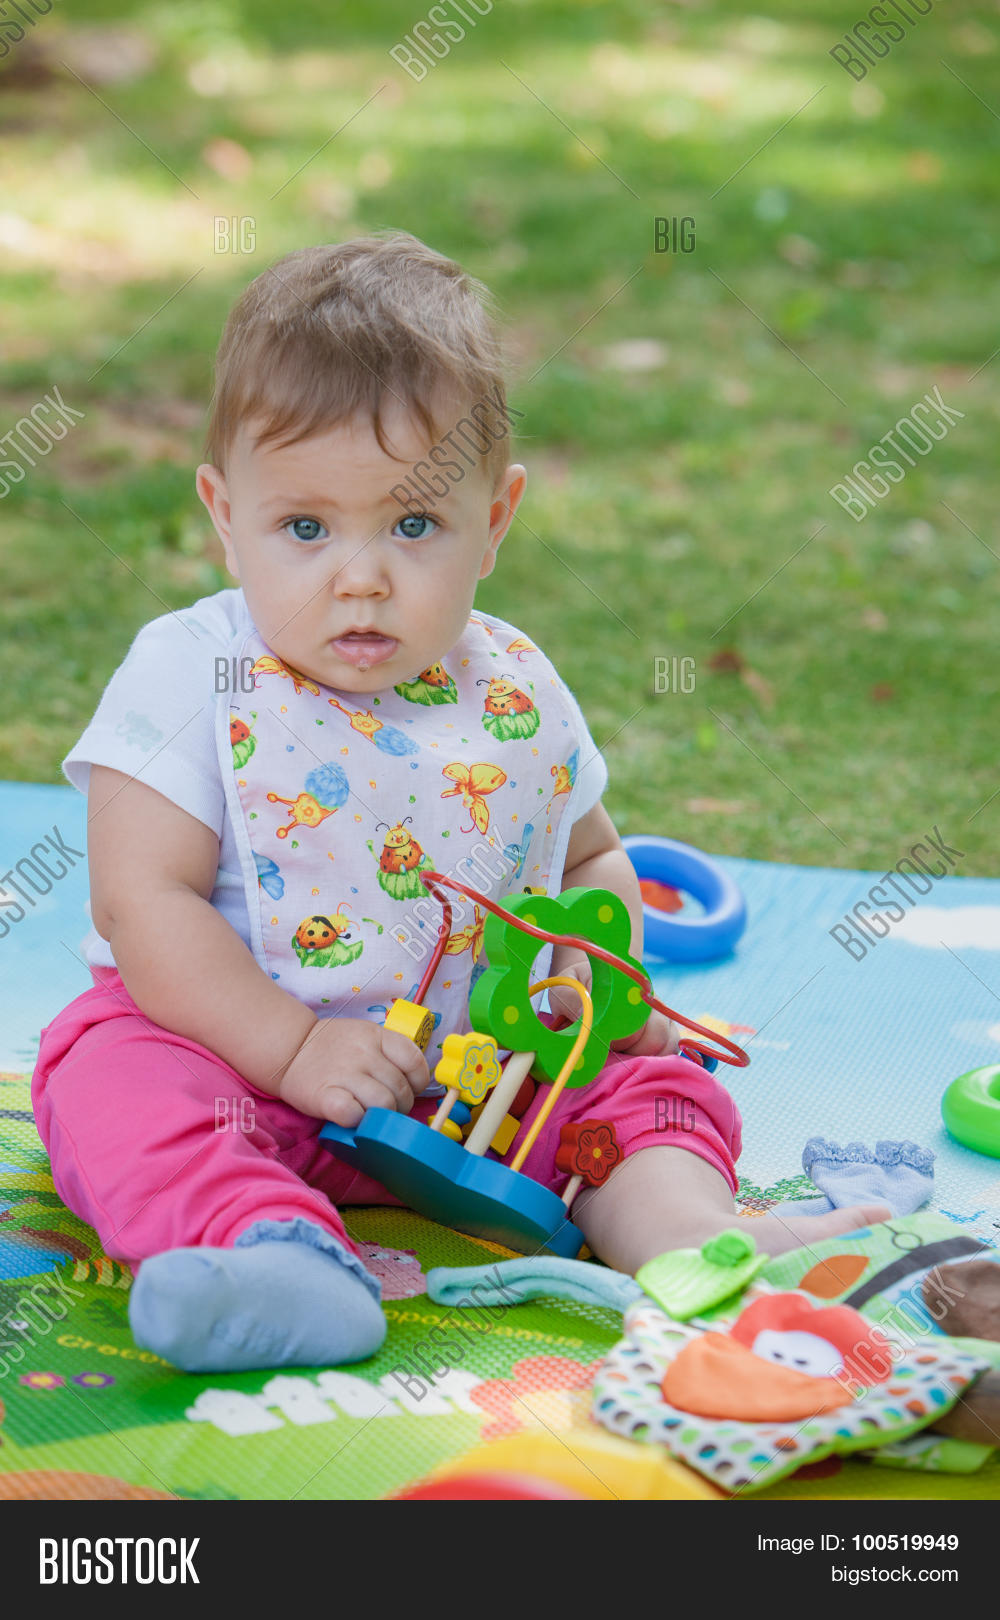 Baby Less Than Year Image Photo Free Trial Bigstock